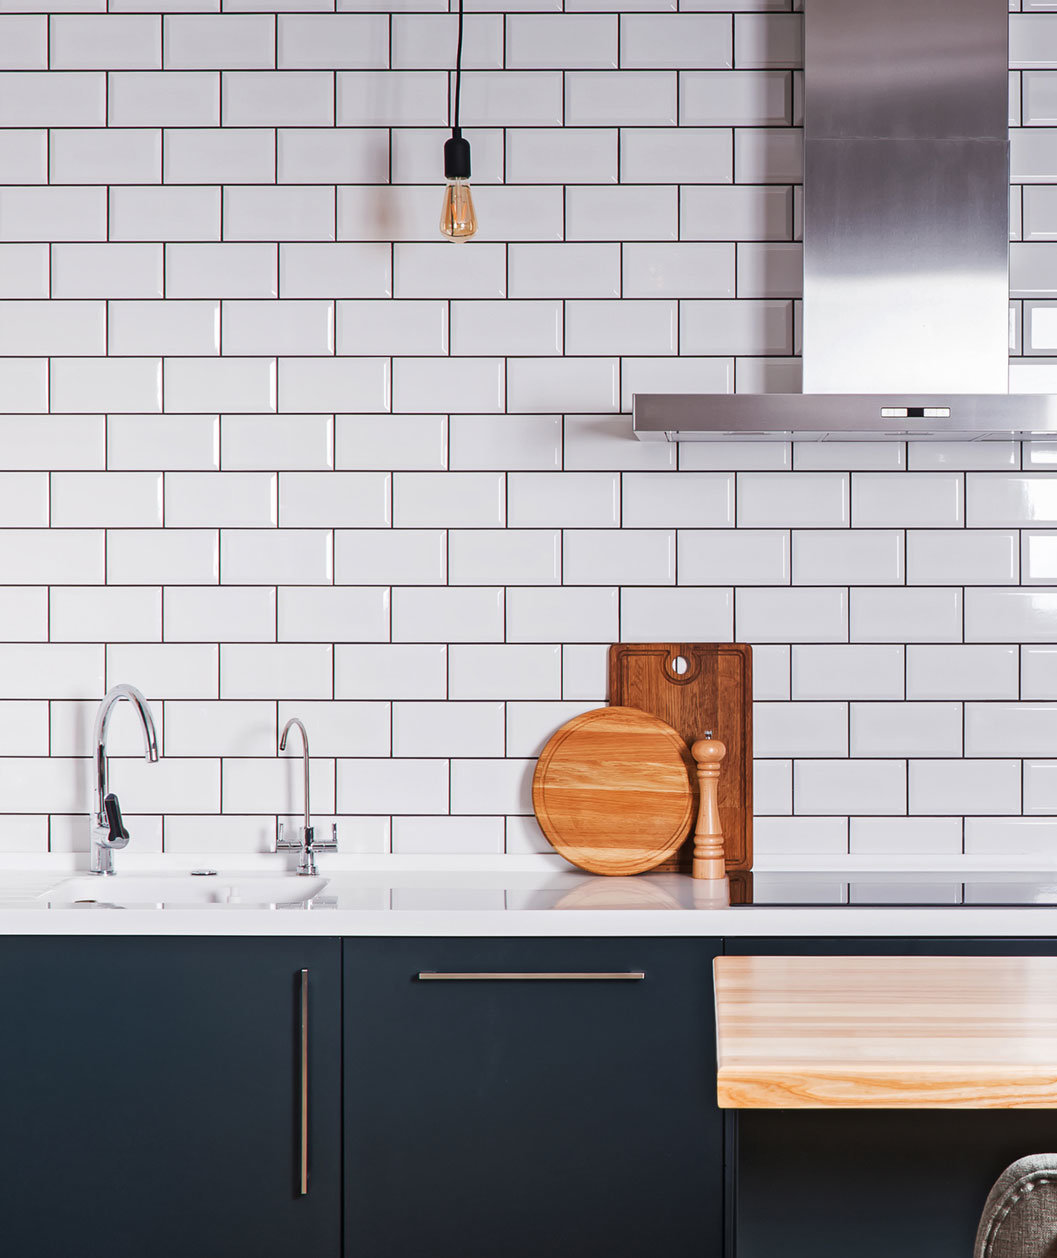 Photo Of Kitchen Tiles: Kitchen Tile Backsplash Ideas You Need To See Right Now